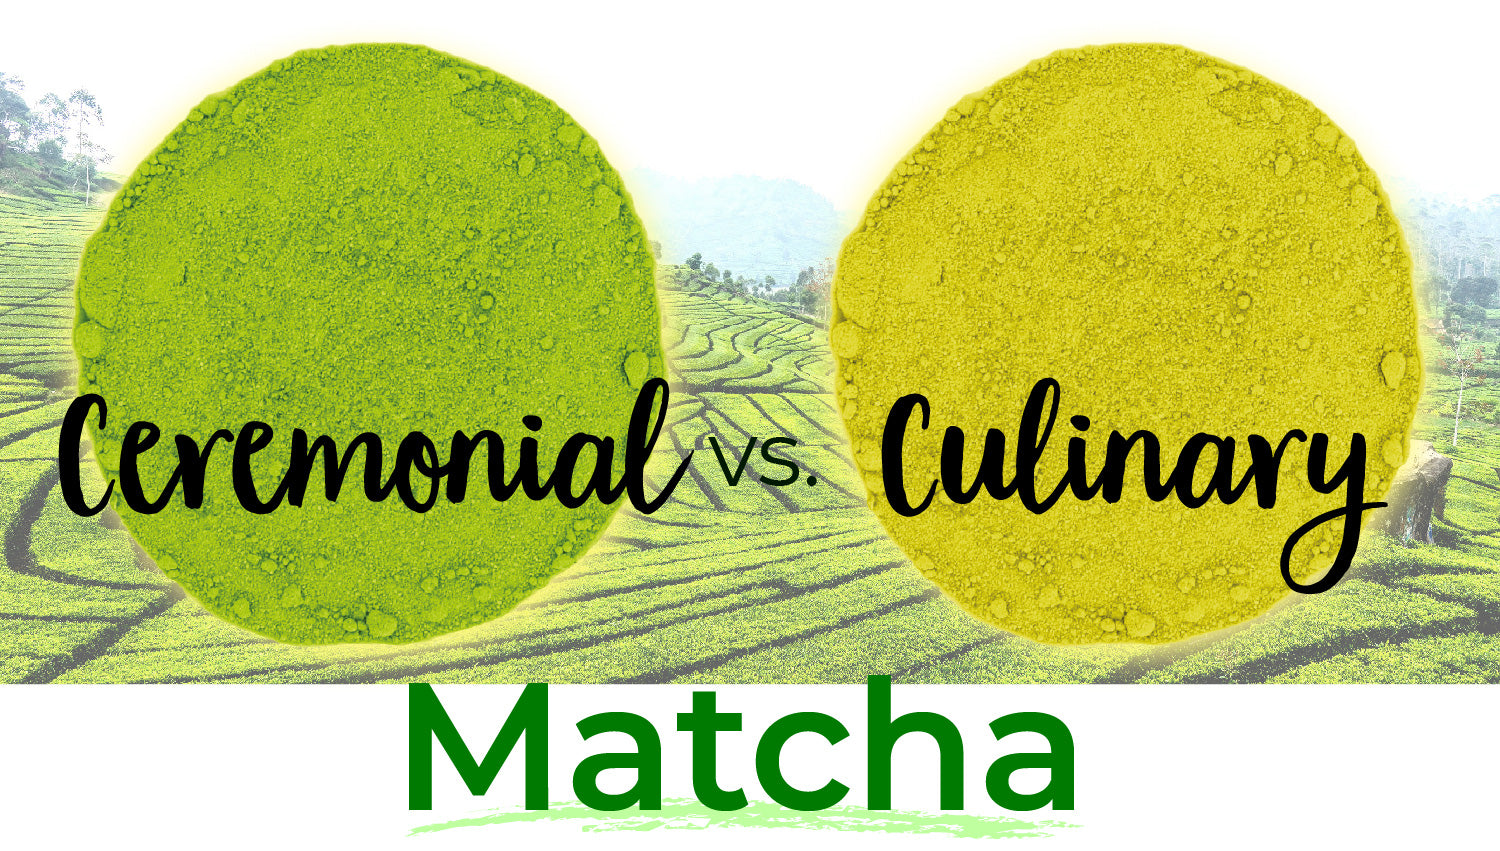 Ceremonial Matcha vs. Culinary Matcha | What's The Difference? | Blog | Alovitox Organic Superfoods